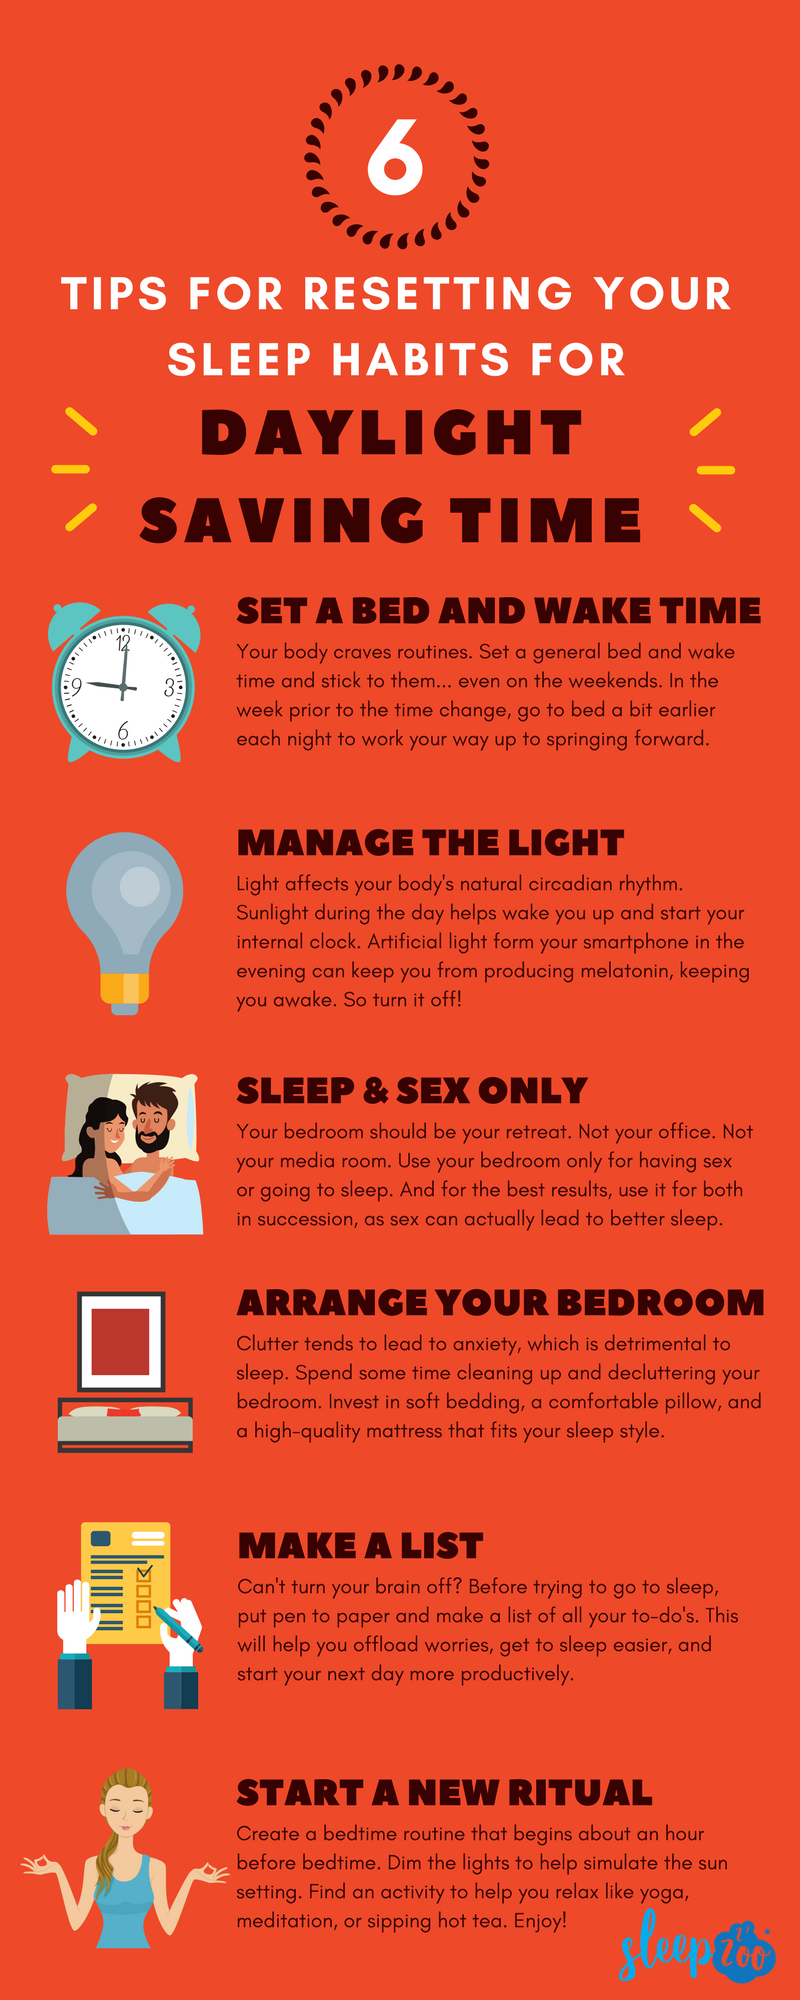 Report Daylight Saving Time And The Negative Effects Of